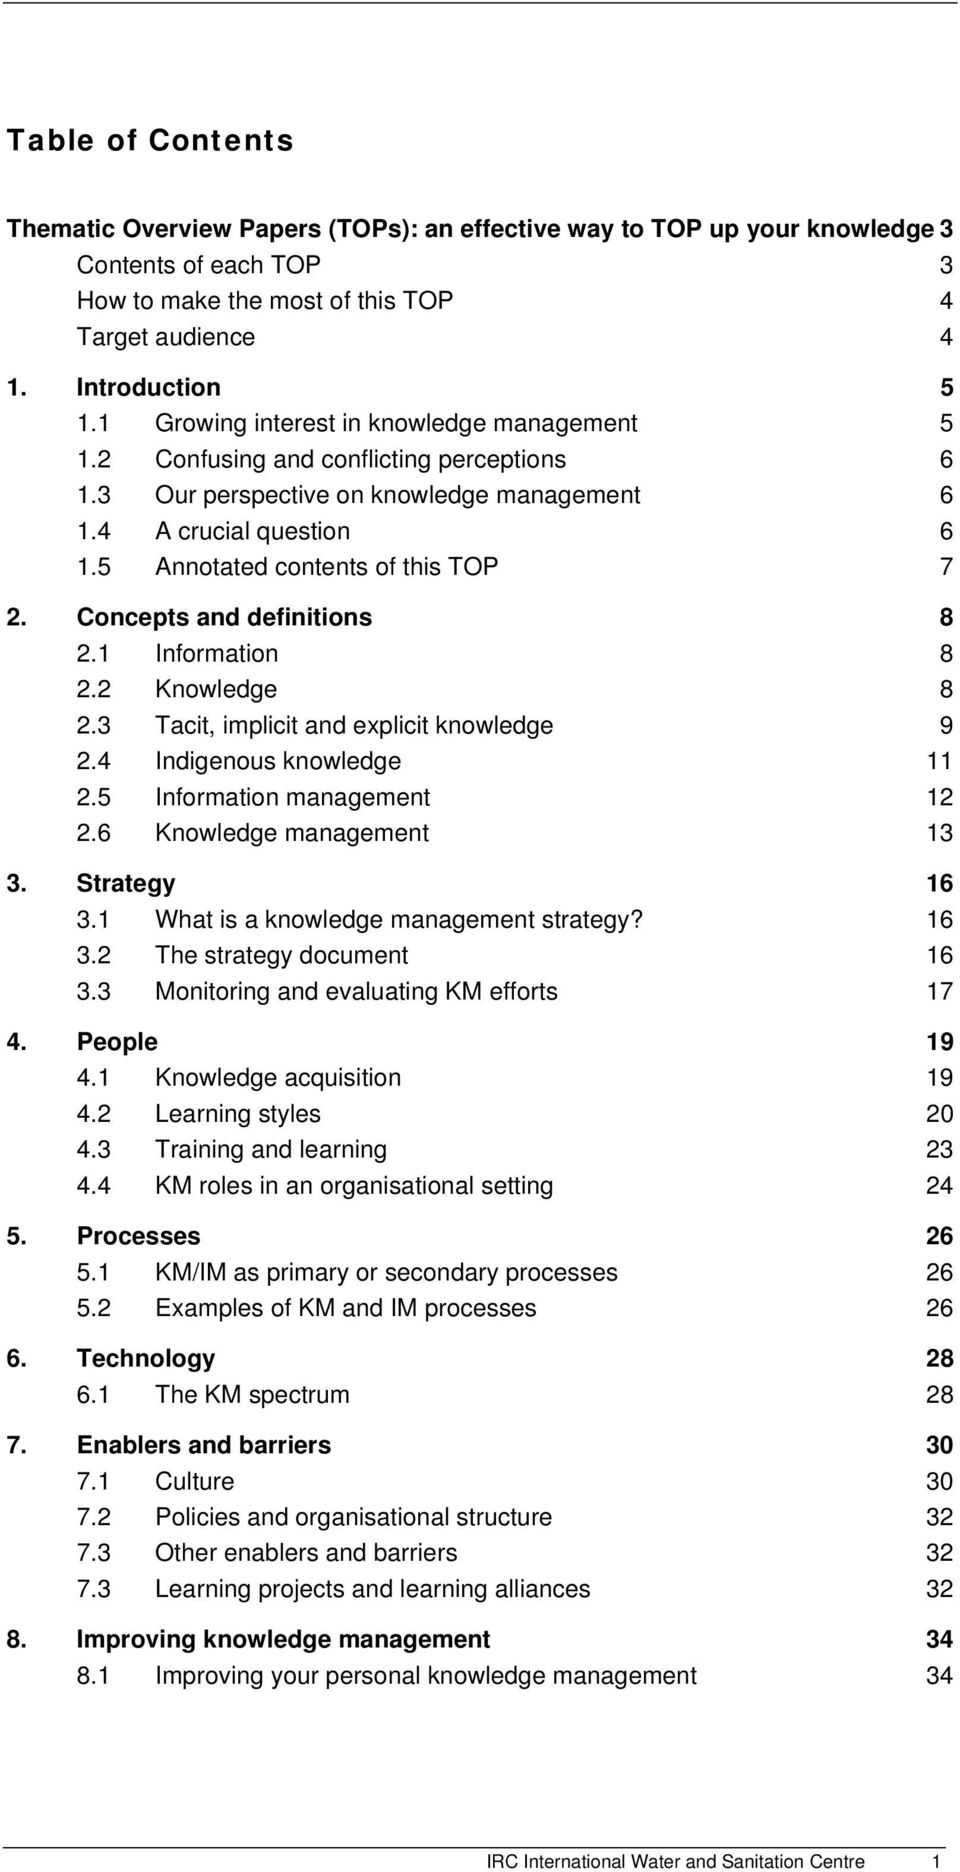 Concepts and definitions 8 2.1 Information 8 2.2 Knowledge 8 2.3 Tacit, implicit and explicit knowledge 9 2.4 Indigenous knowledge 11 2.5 Information management 12 2.6 Knowledge management 13 3.